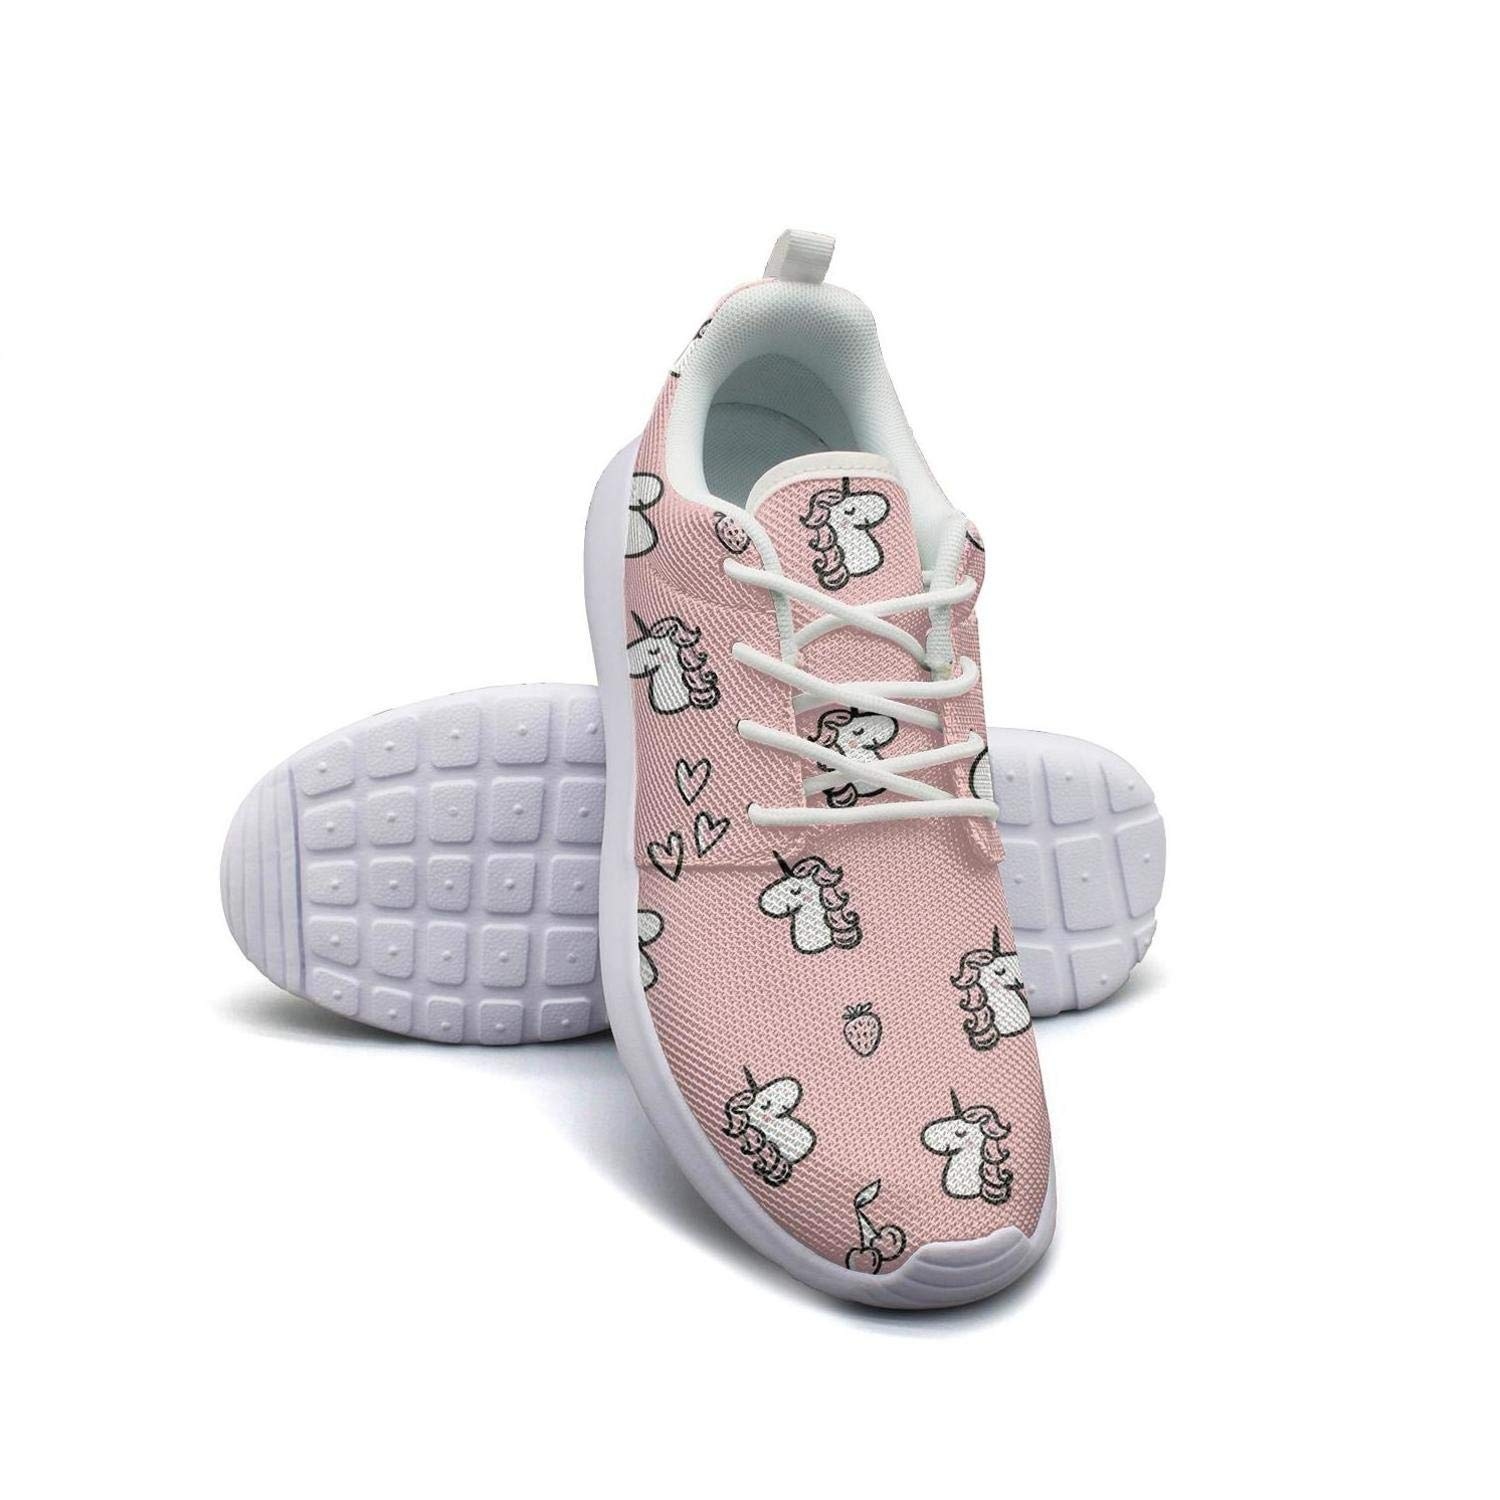 Strawberry plants fruit Dots White Casual Shoes for Women Lo-Top Wear-Resistant Running Shoes For Girls